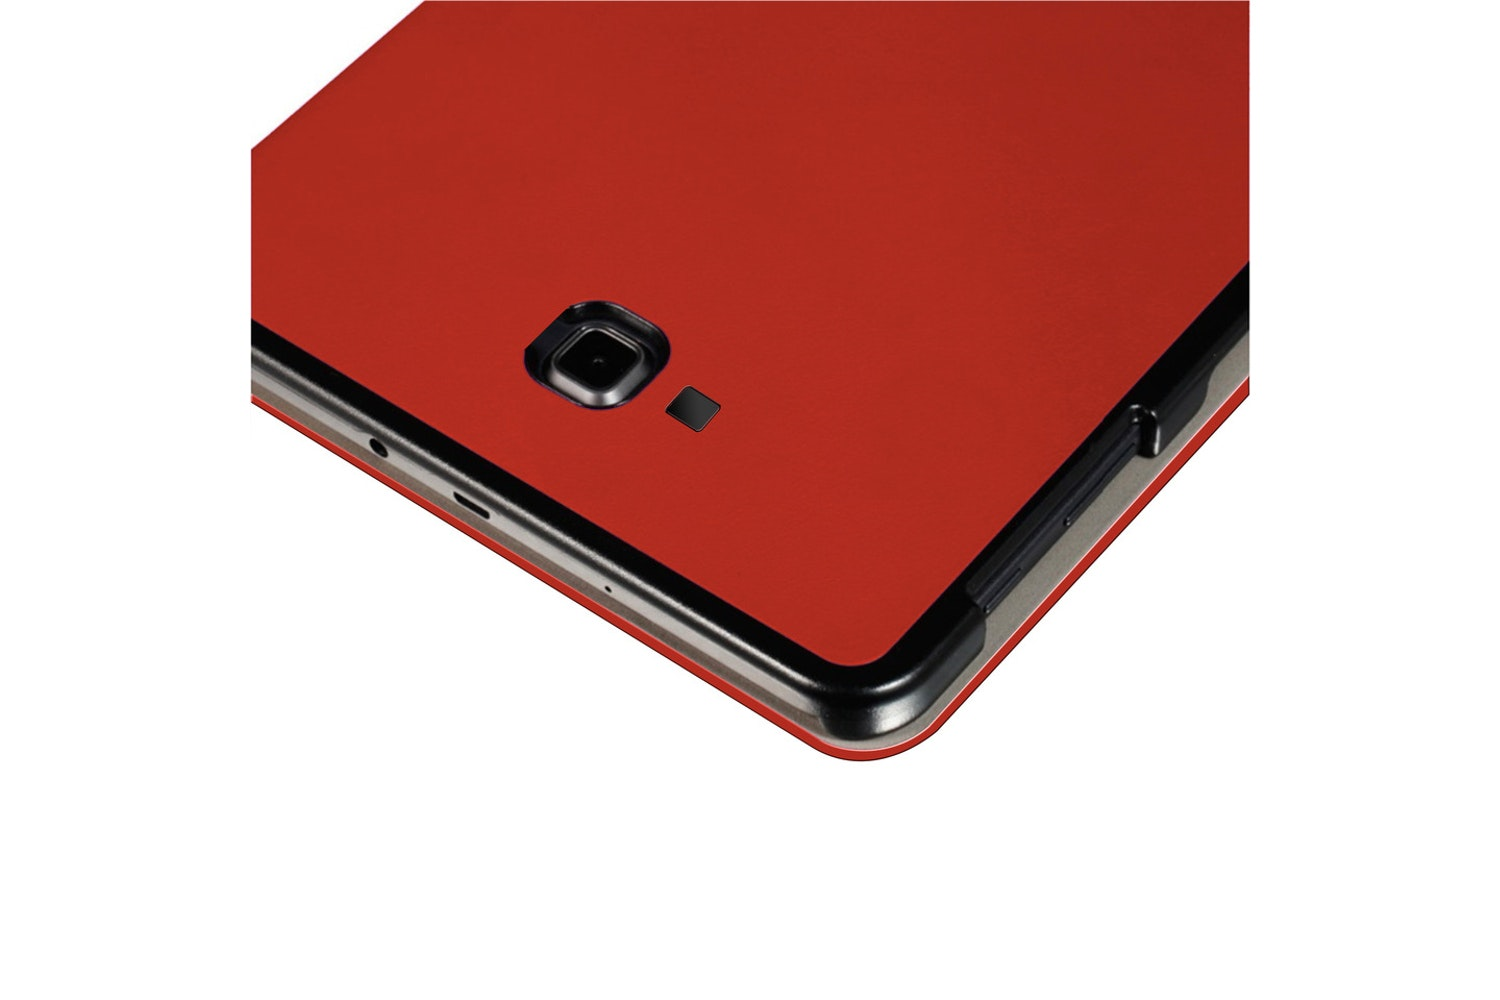 Tactus Samsung Tab A 7.0 Slim Smart Cover | Red